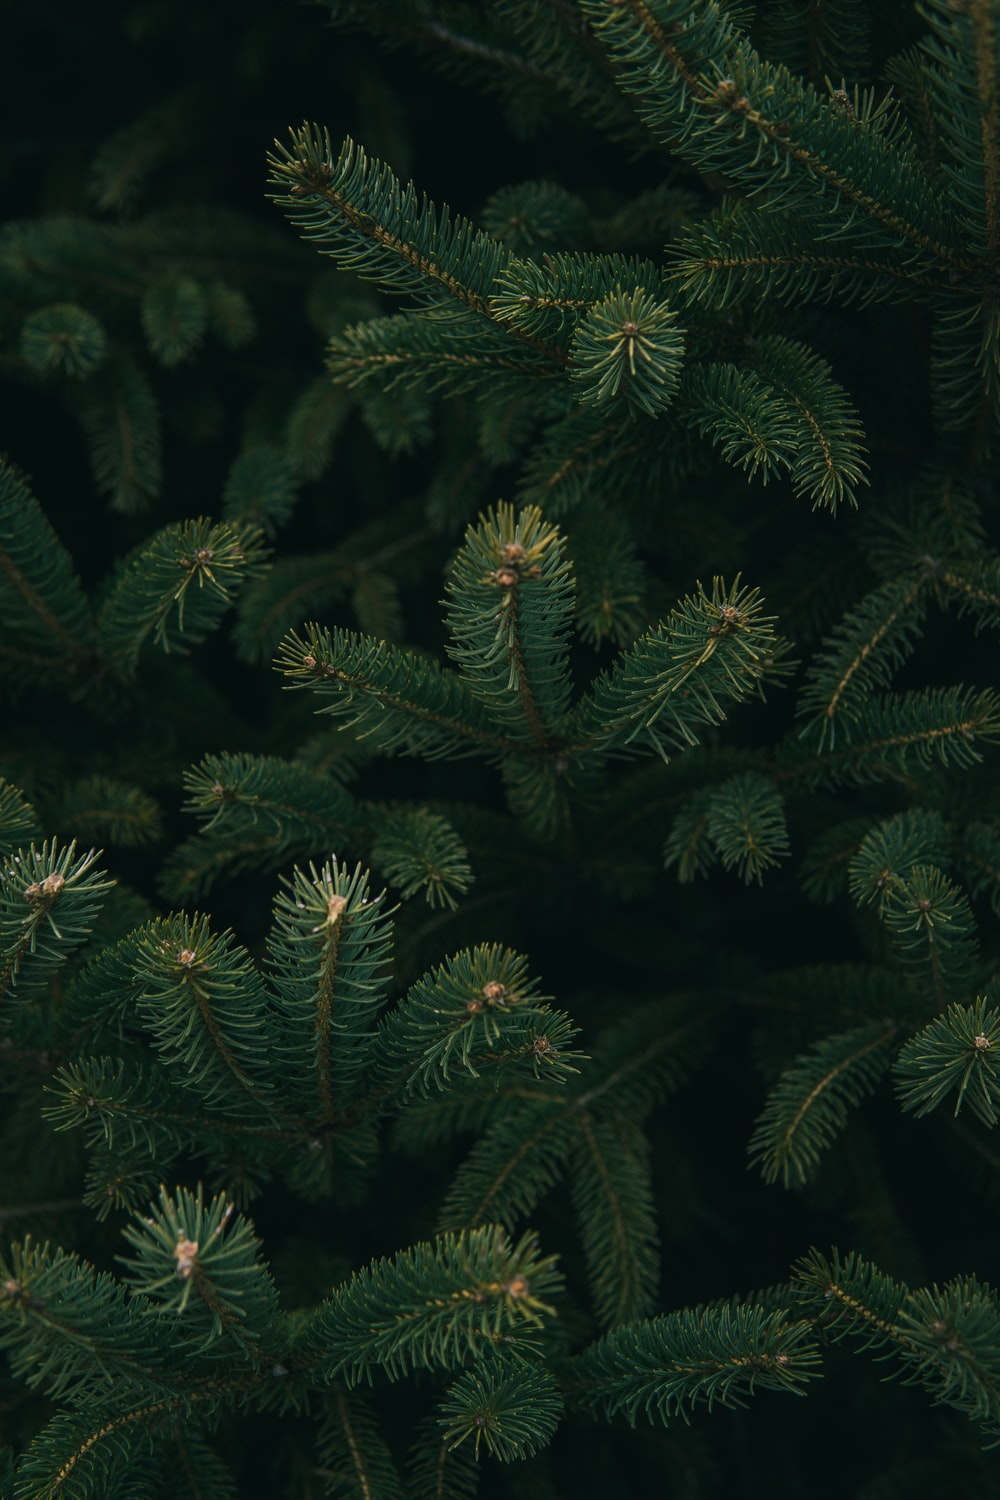 1000x1500 - Christmas Trees Backgrounds 16